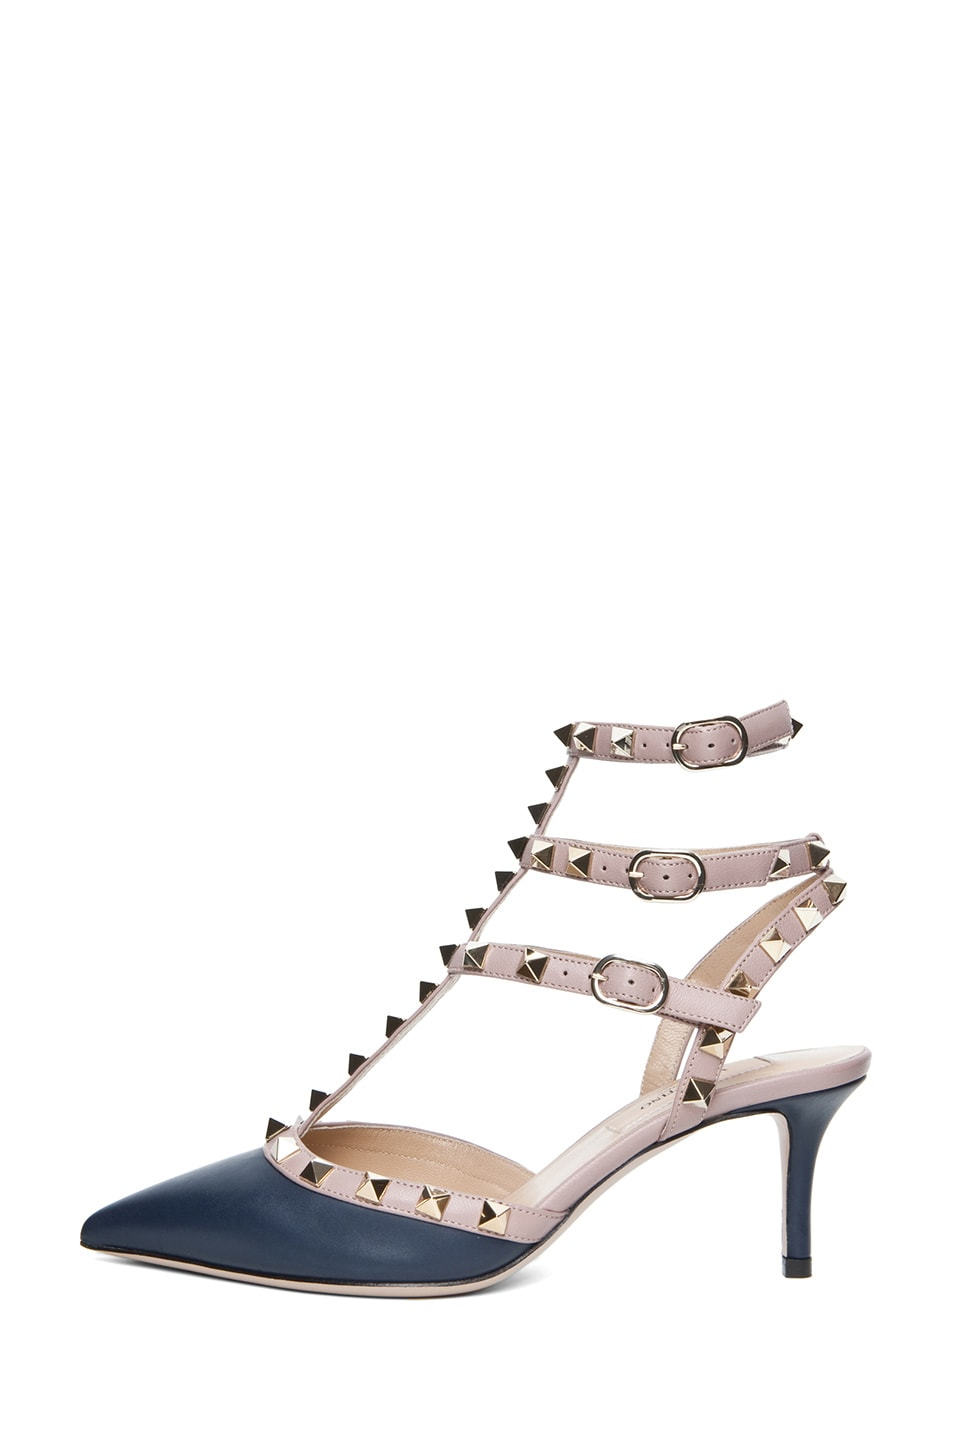 Image 1 of Valentino Rockstud Nappa Leather Slingback T.65 in Marine